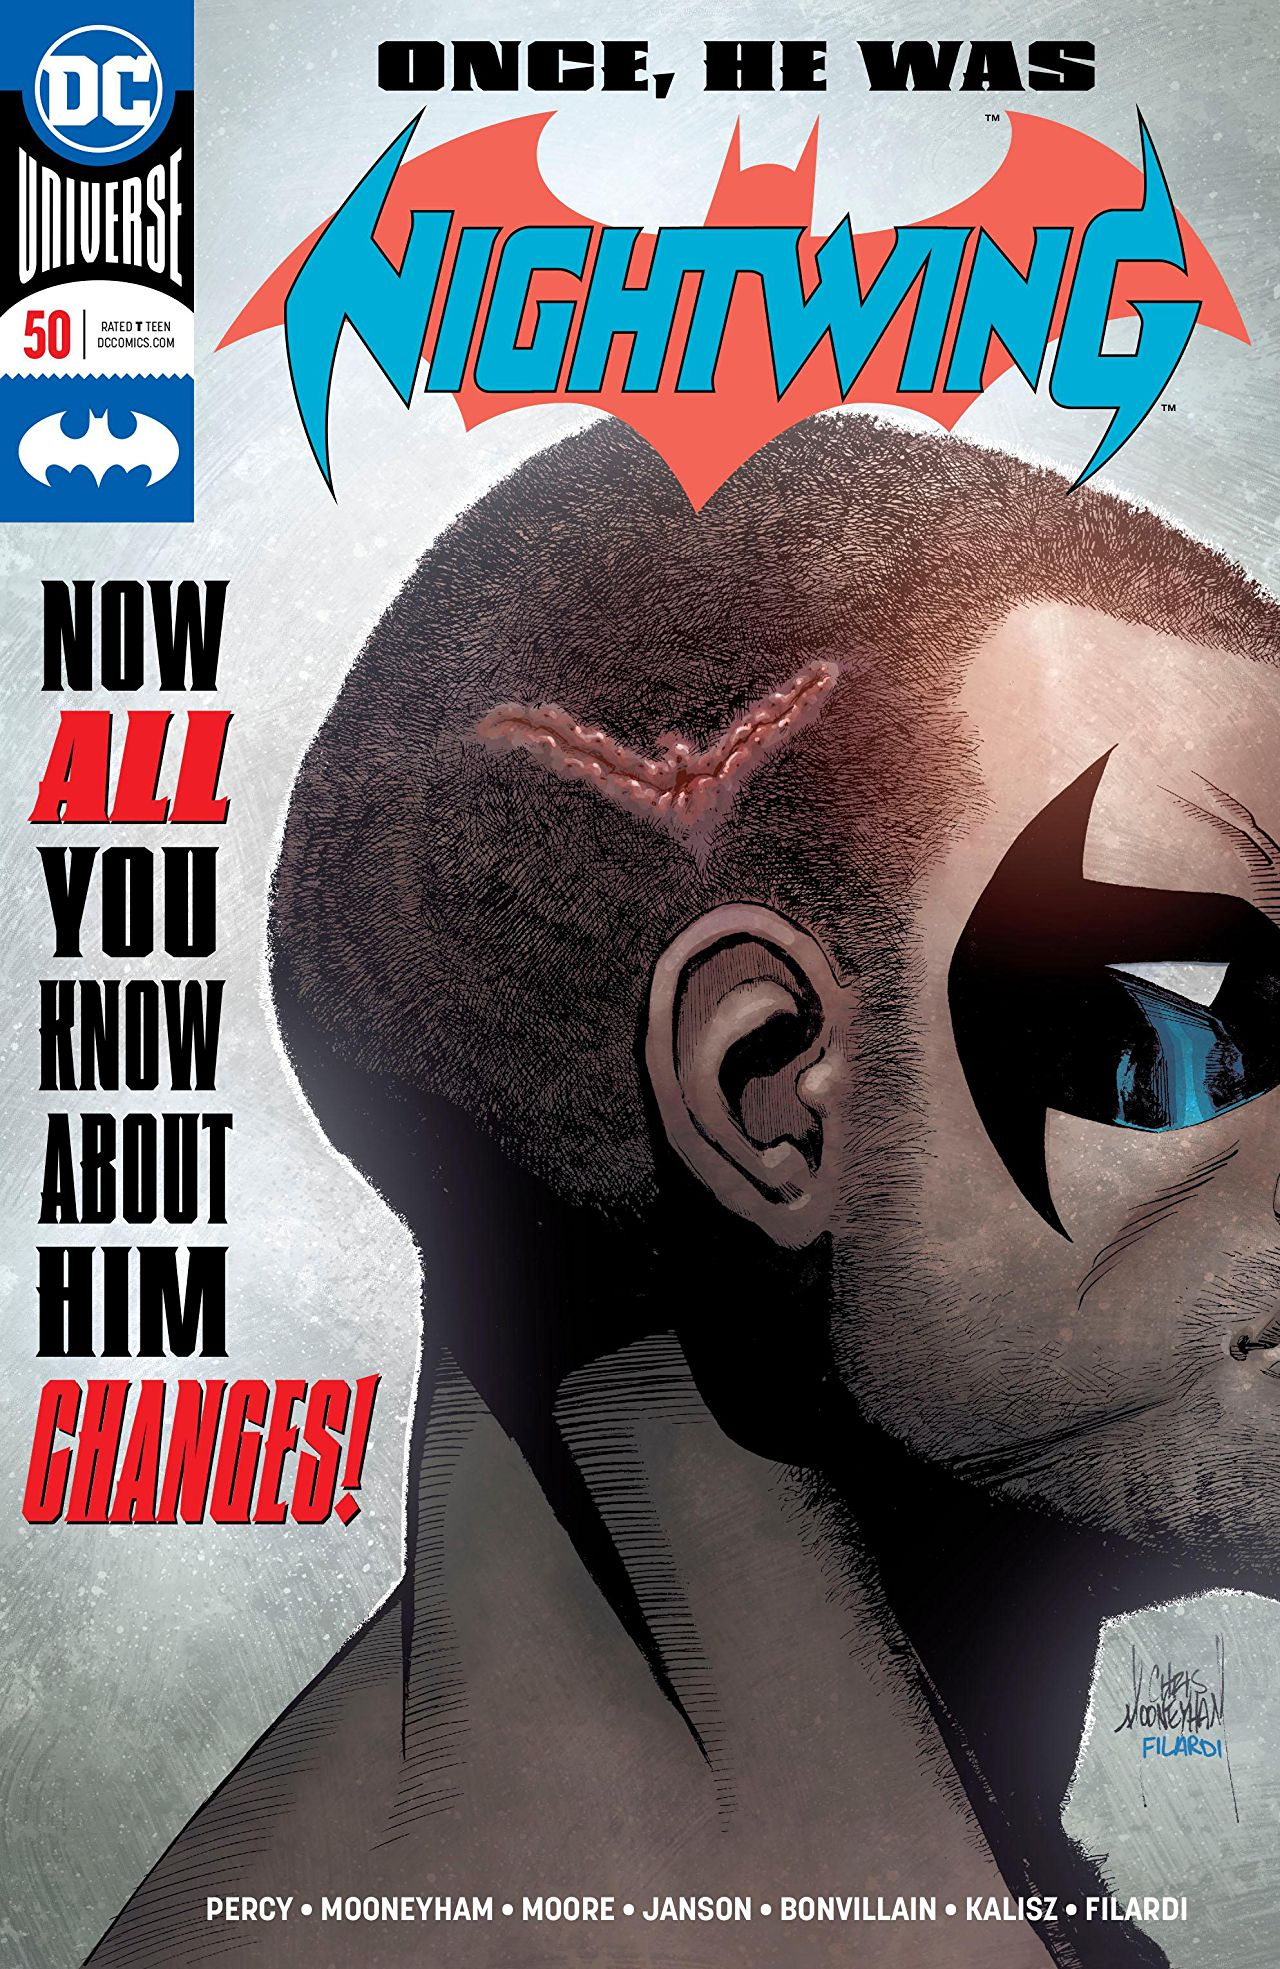 Nightwing #50 review: A new look and a new story